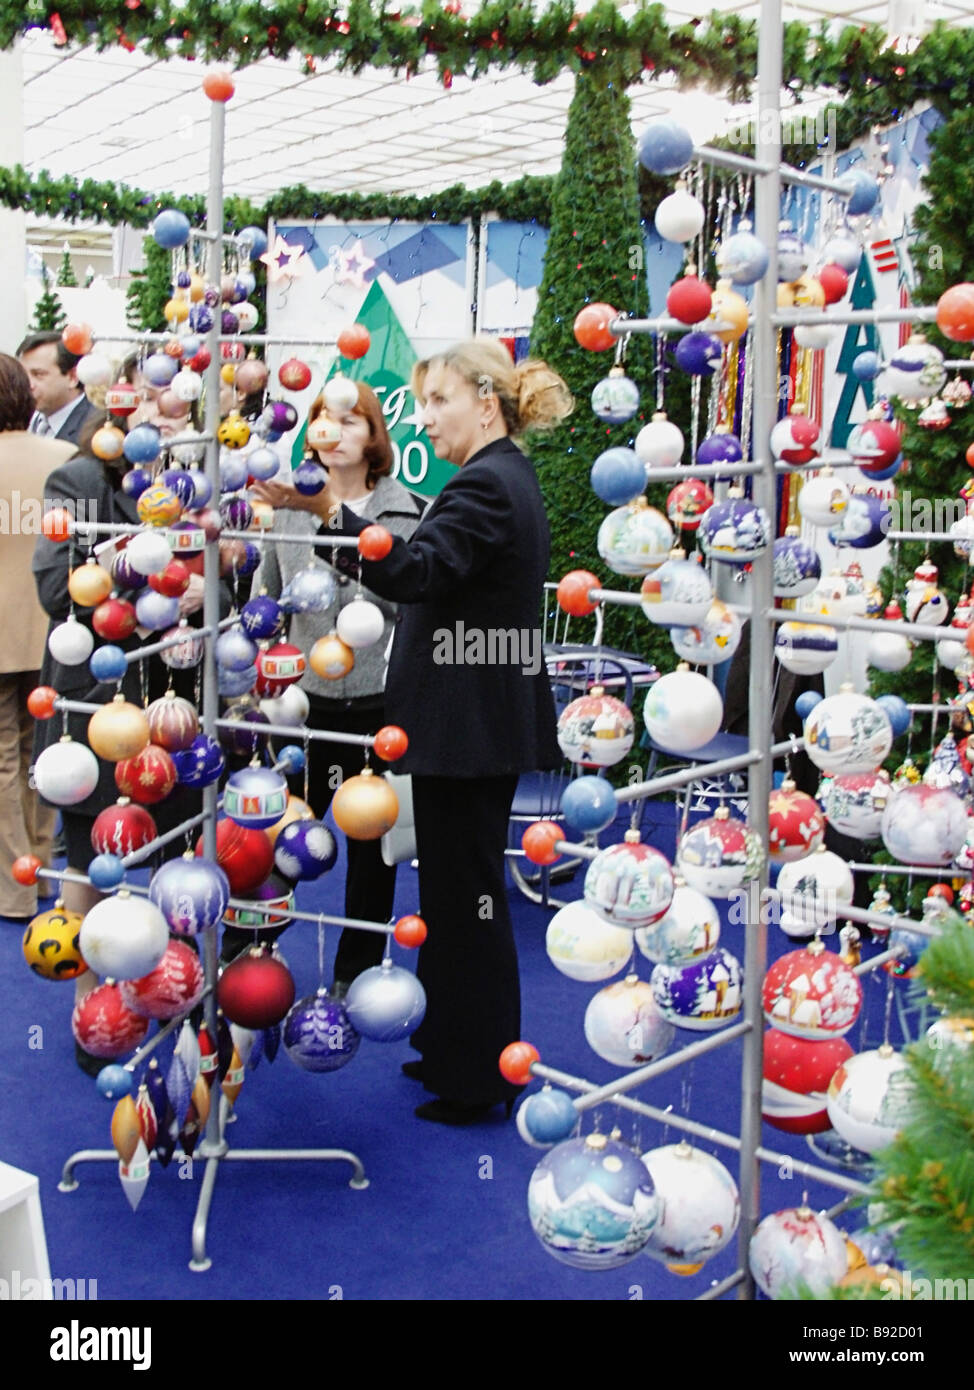 Stock Photo The 4th International Christmas Decorations Pyrotechnics And Decorations For Shop Widows Trade Fair Christmas World Russia